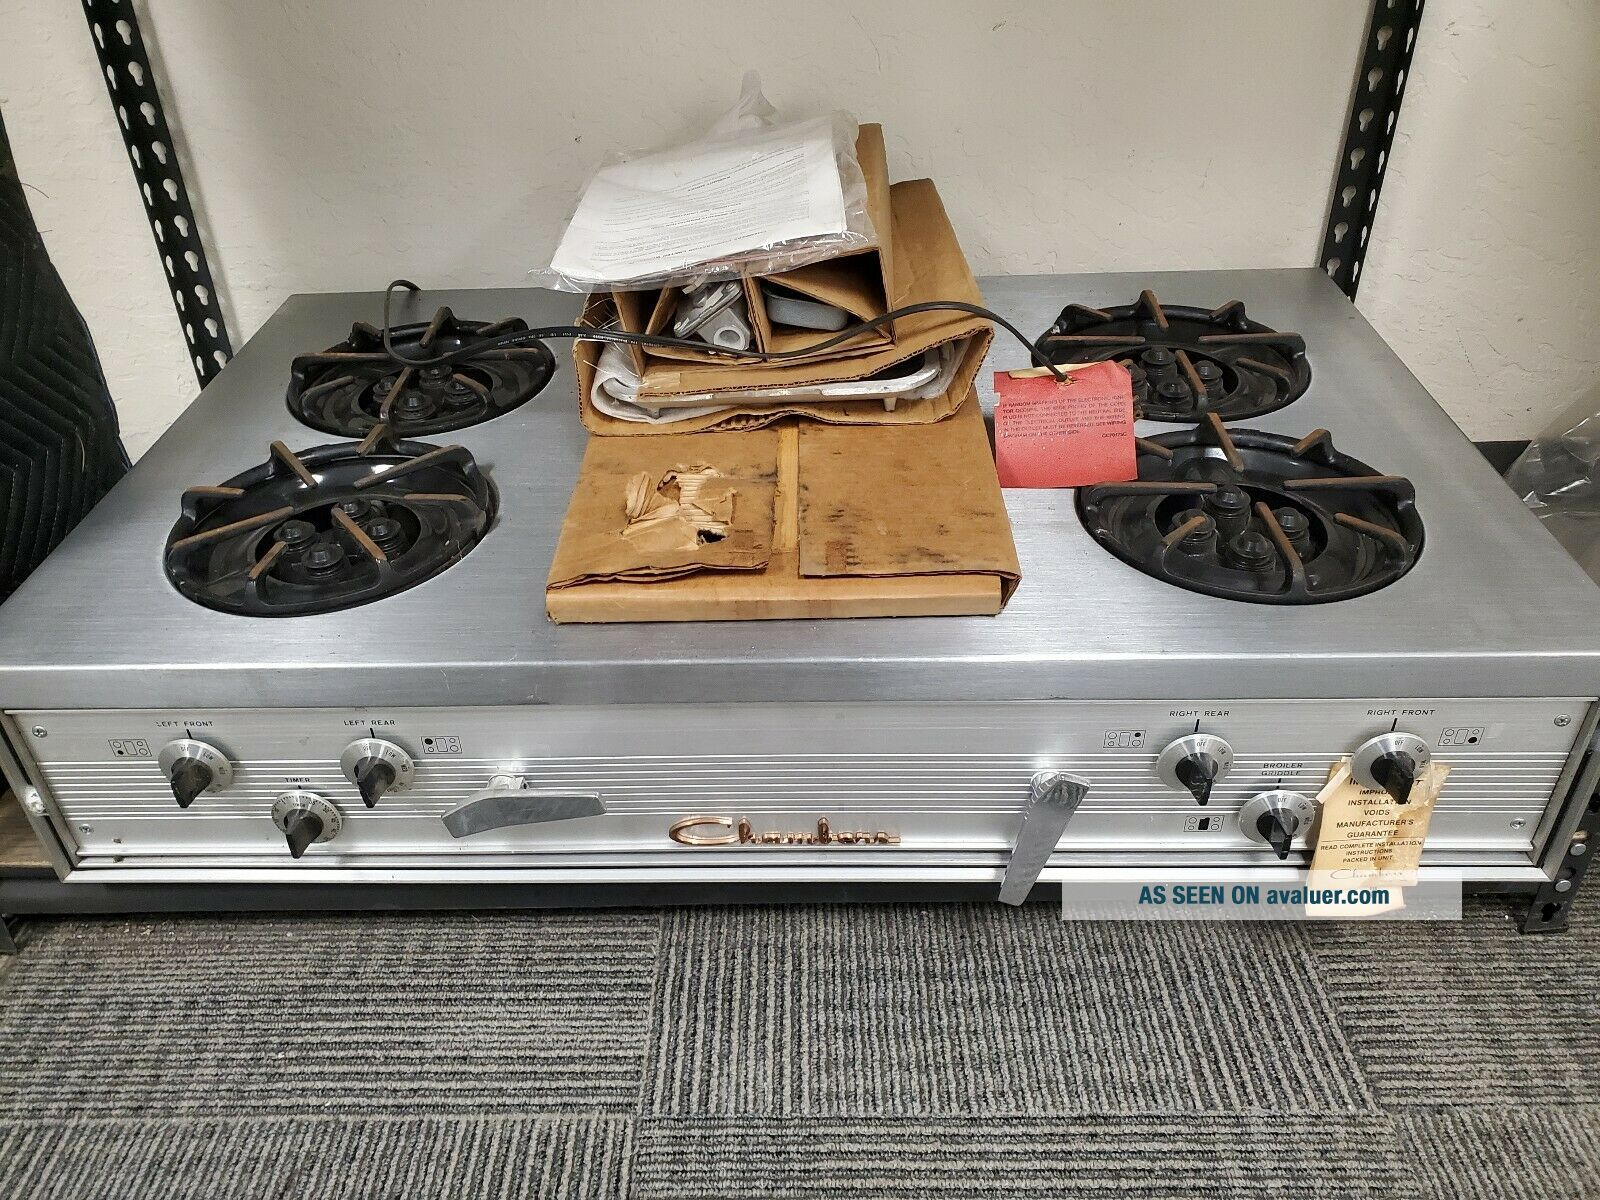 Chambers Vintage Gas Cooktop -